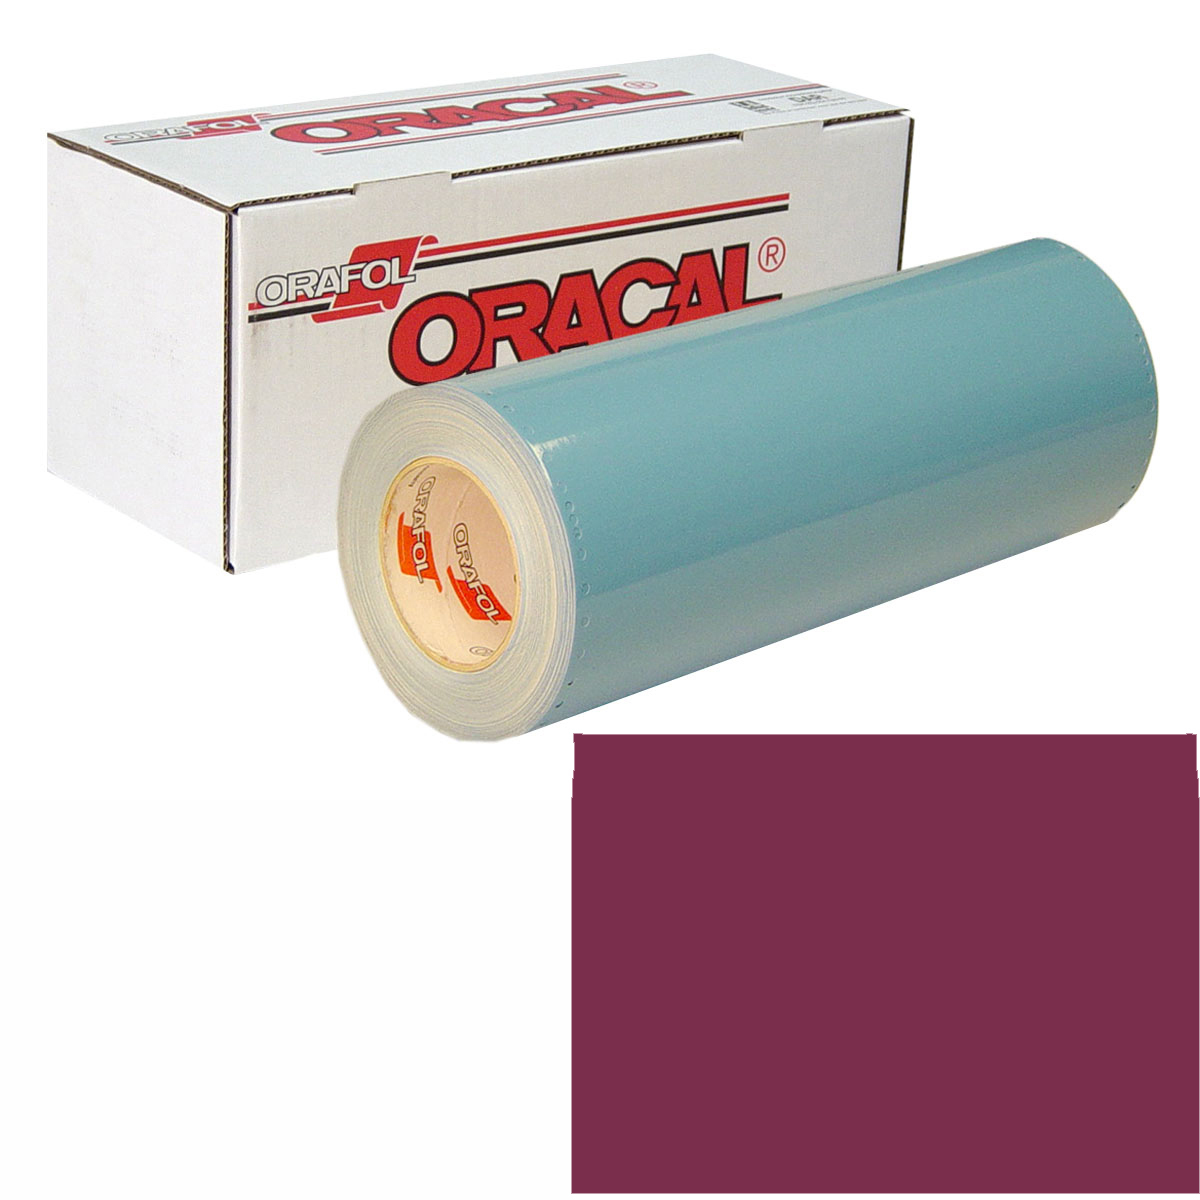 ORACAL 751 15In X 50Yd 026 Purple Red